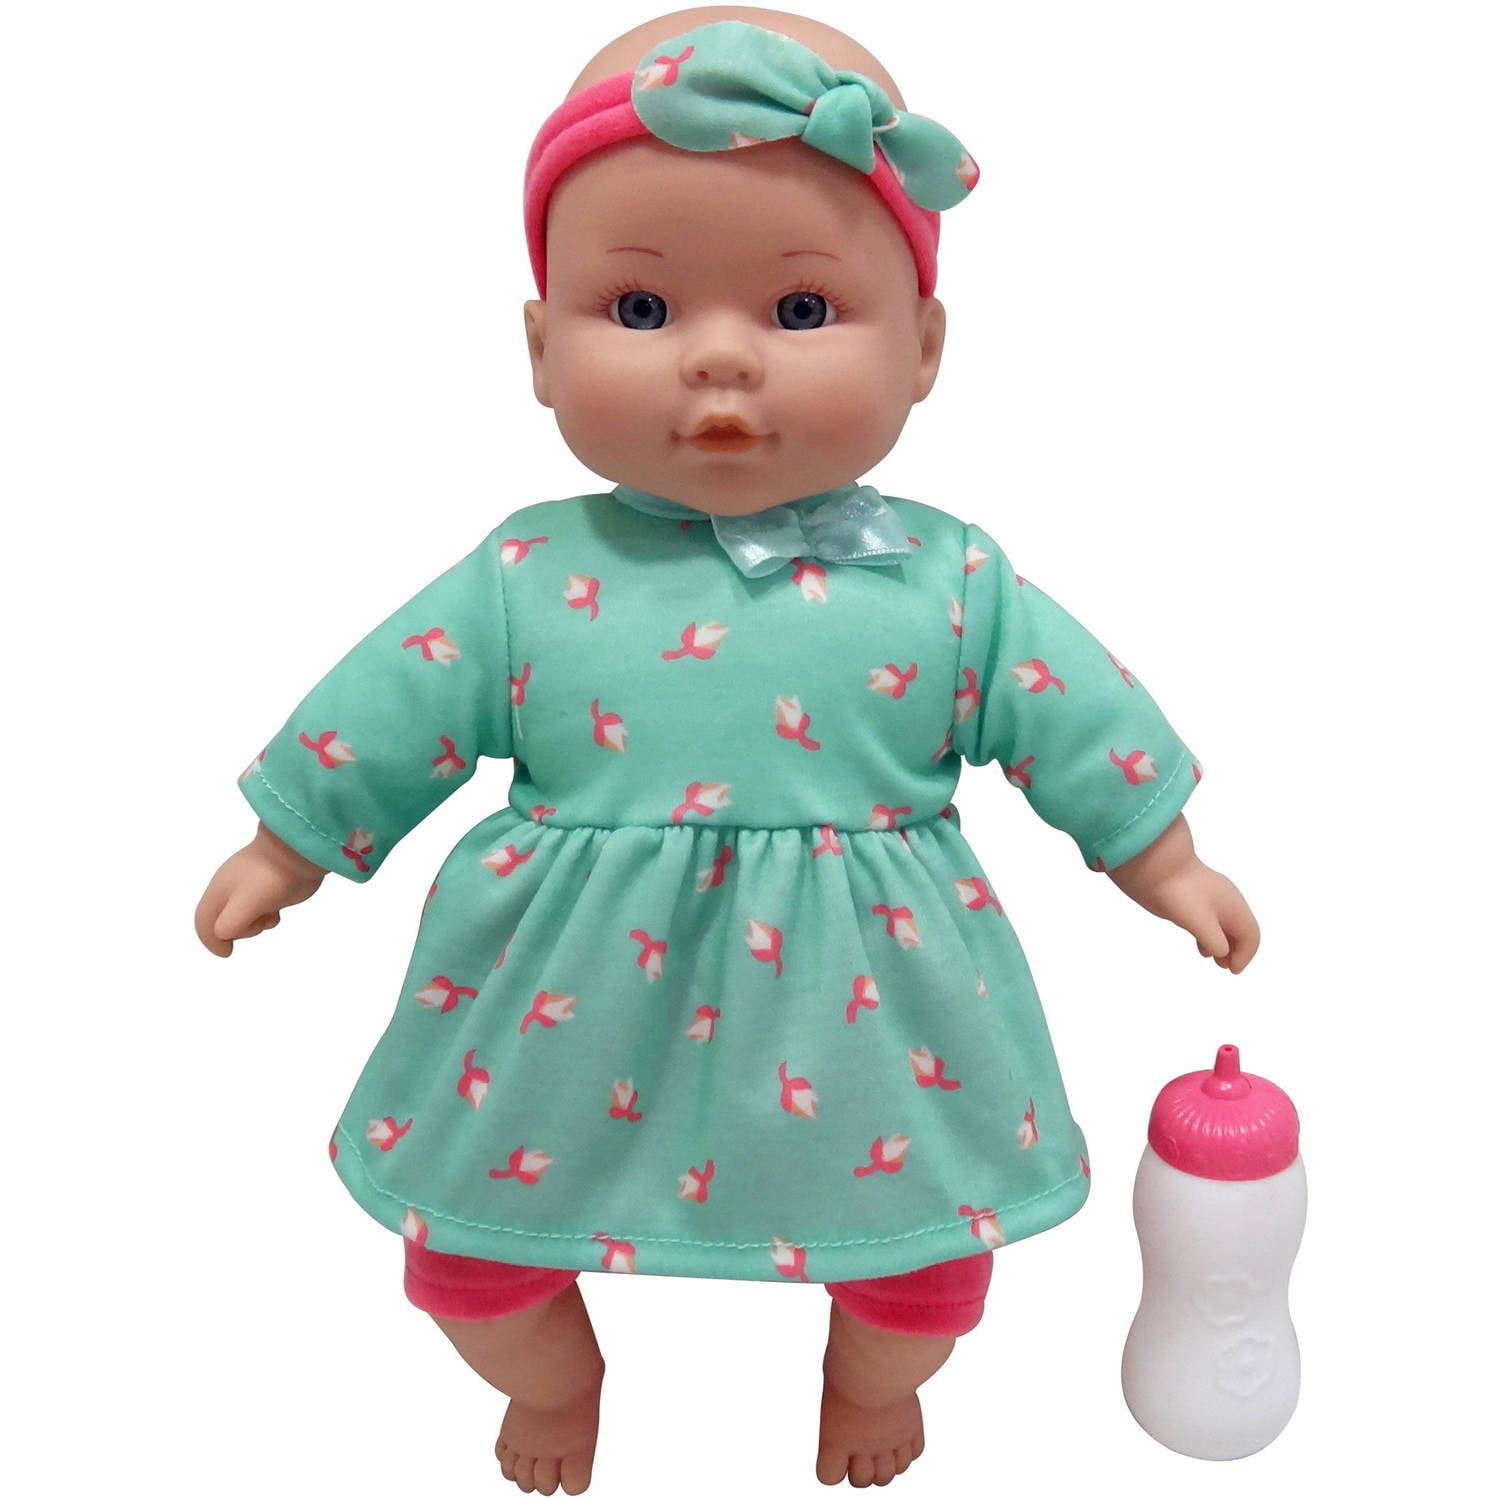 Toy Baby Doll : Baby dolls walmart